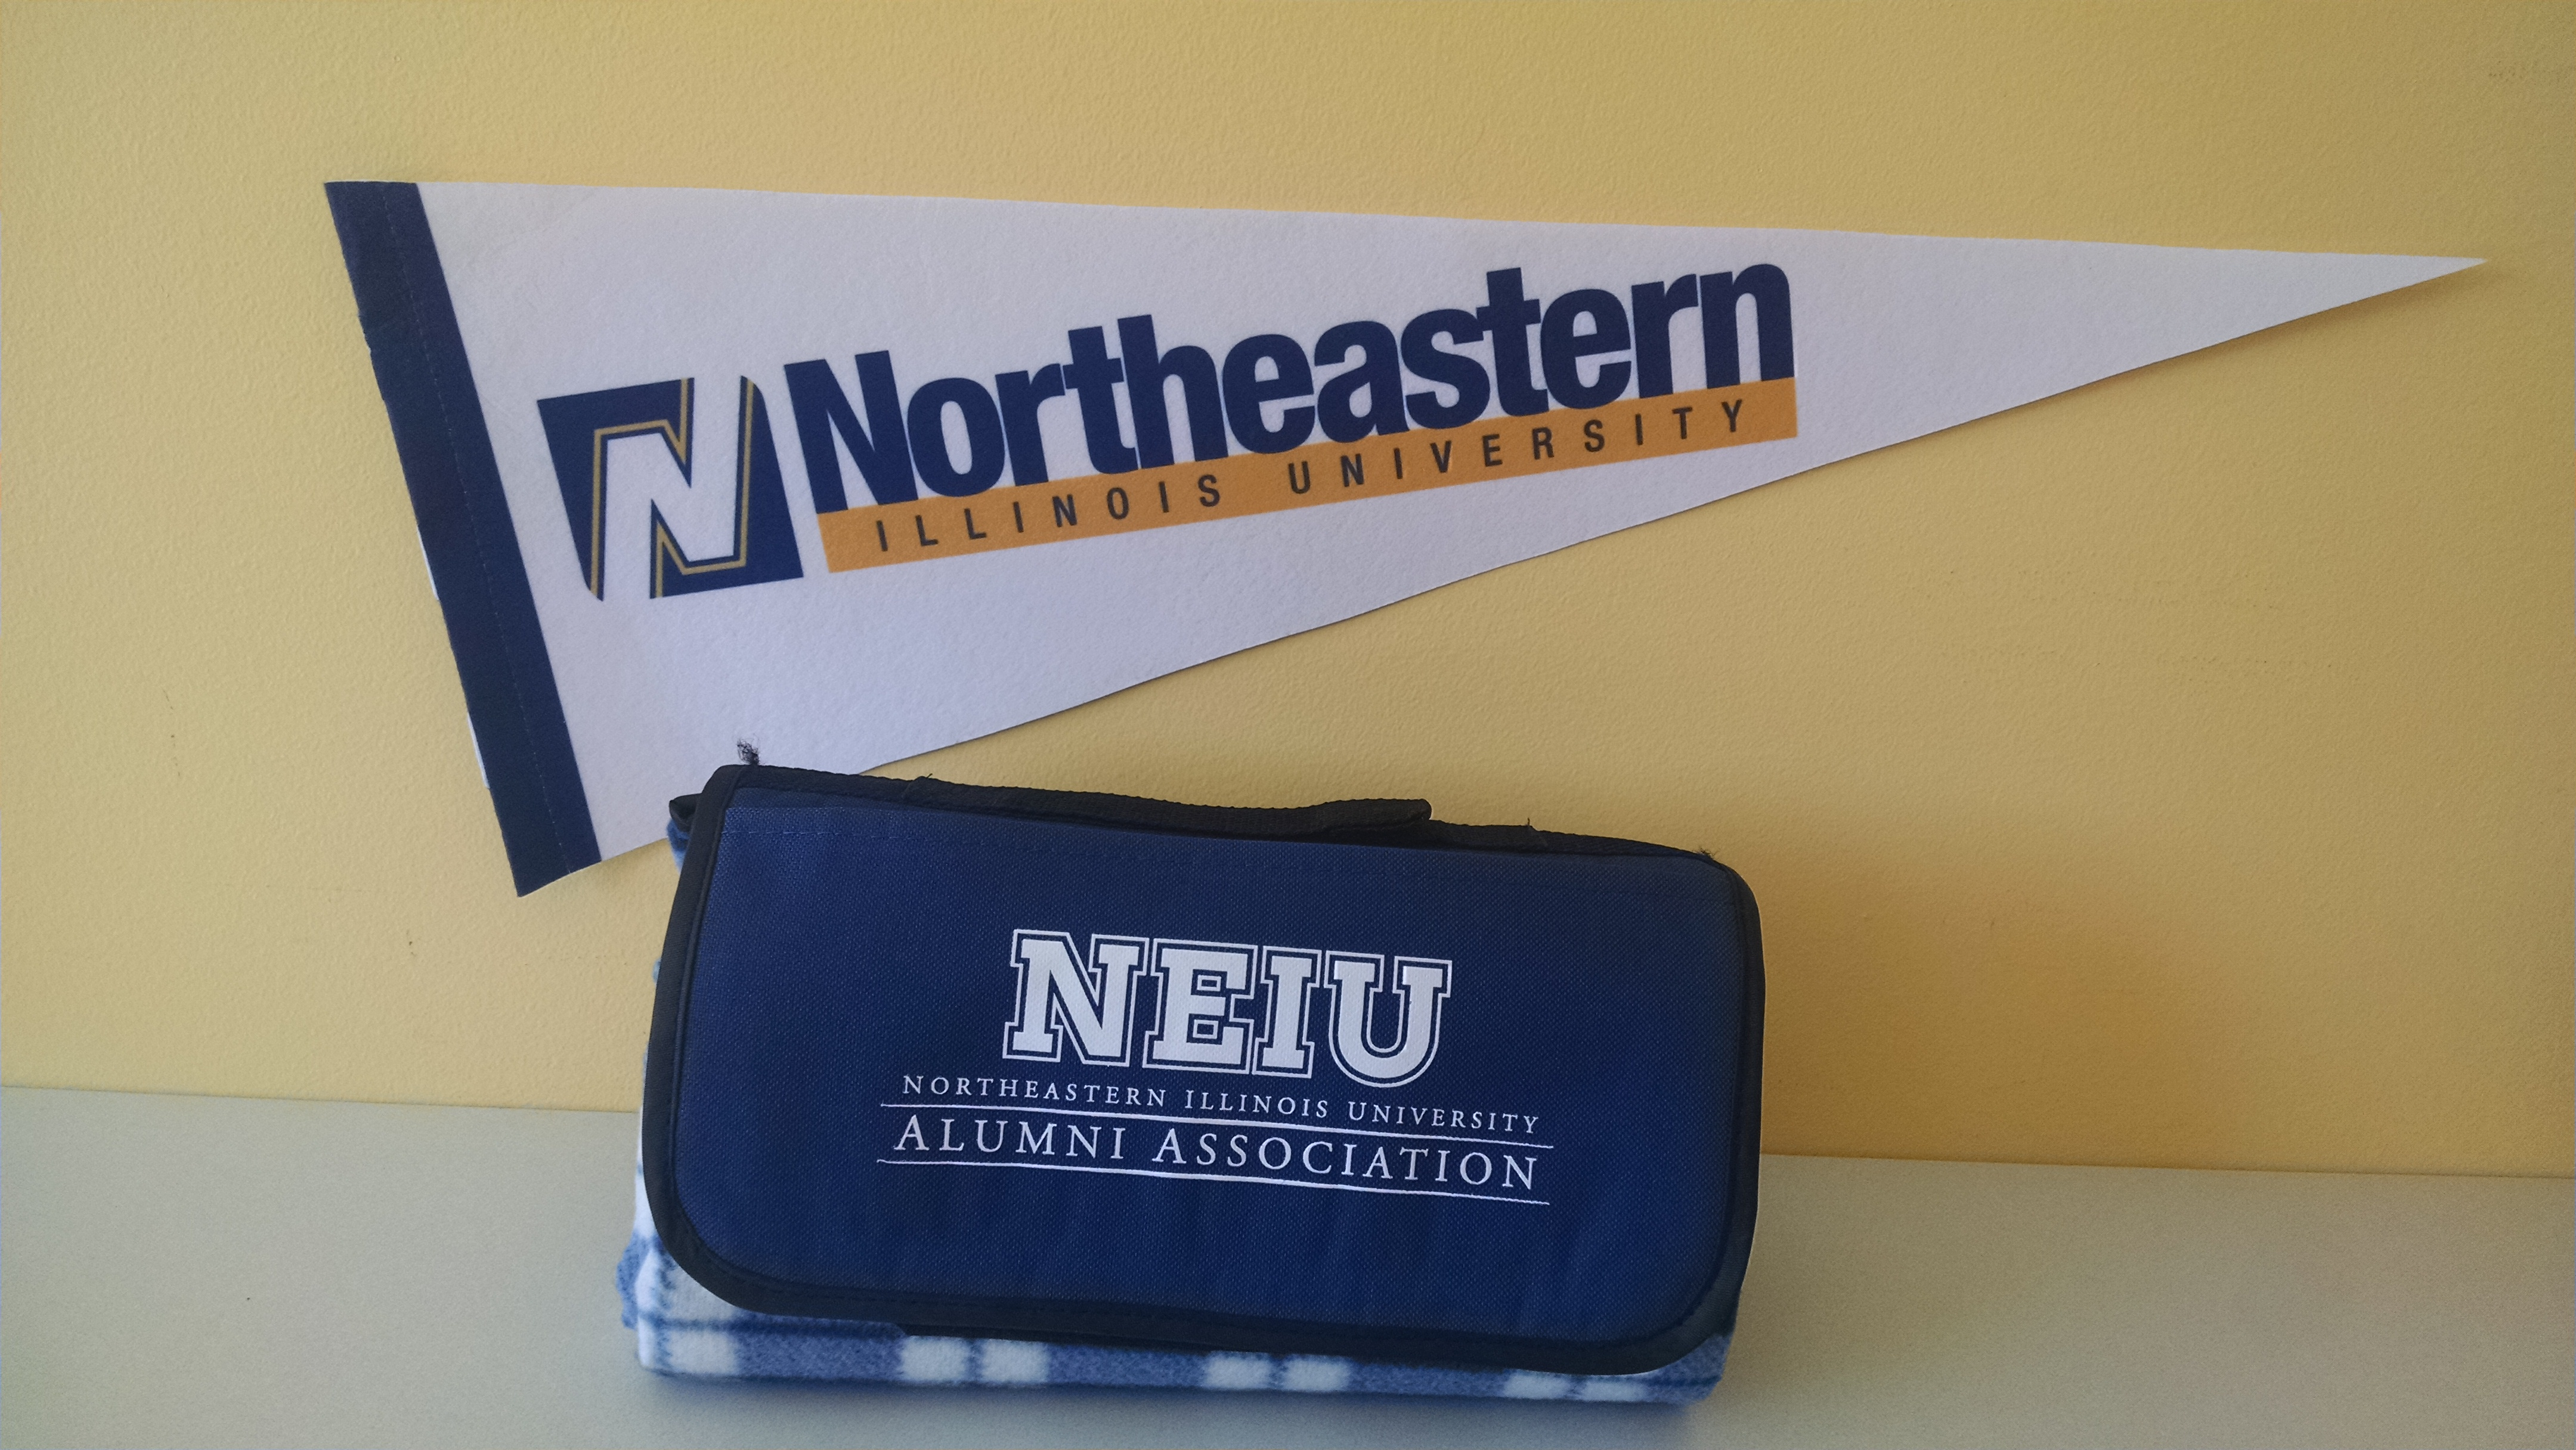 NEIU Alumni Association merchandise